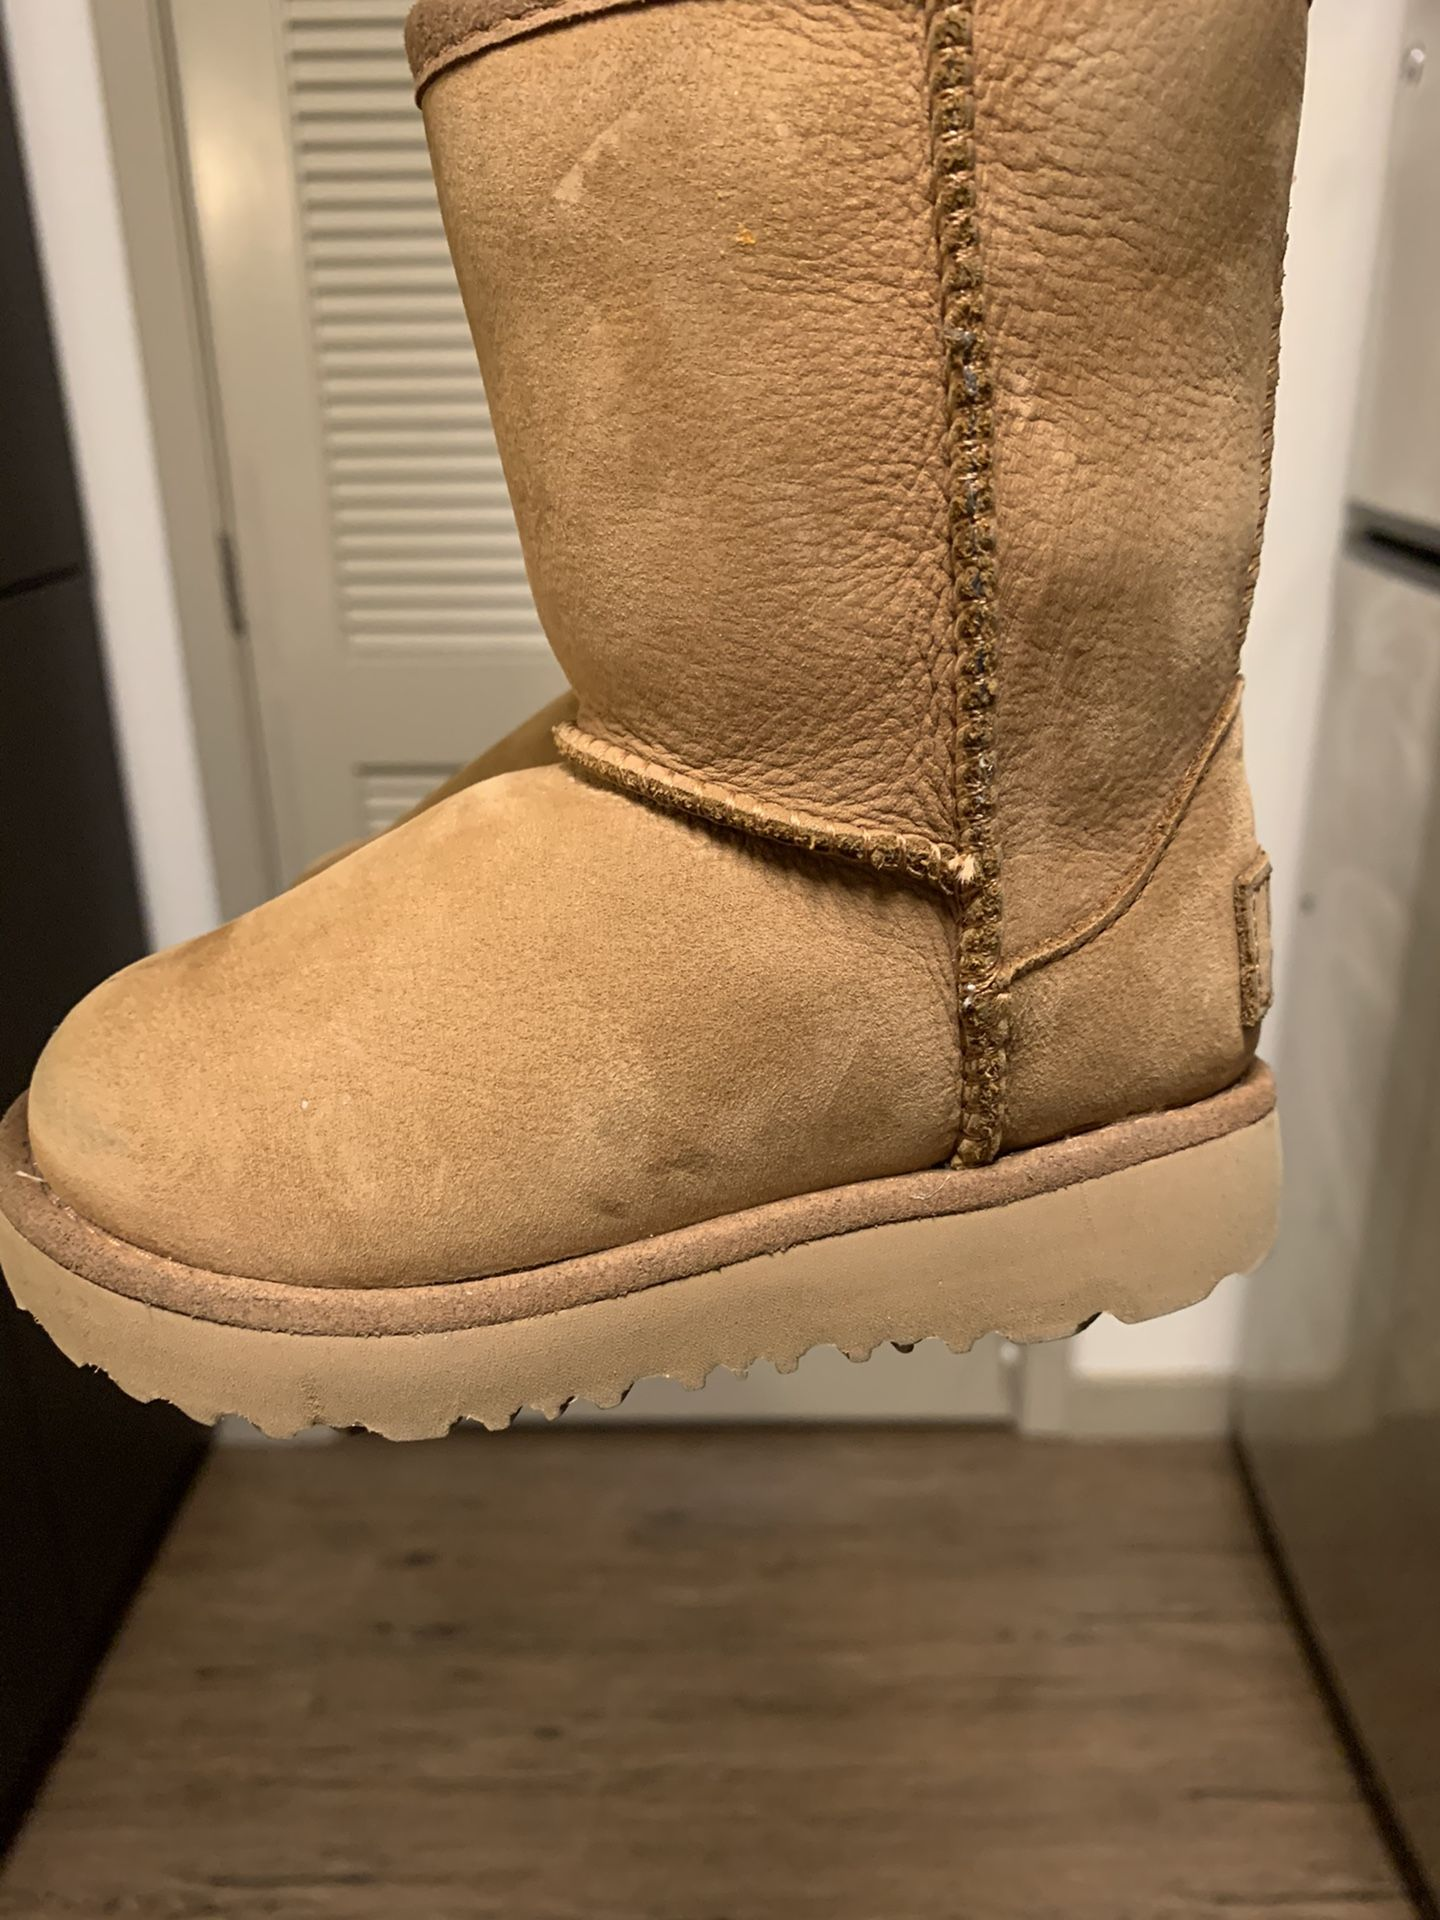 Toddler Ugg boots size 7